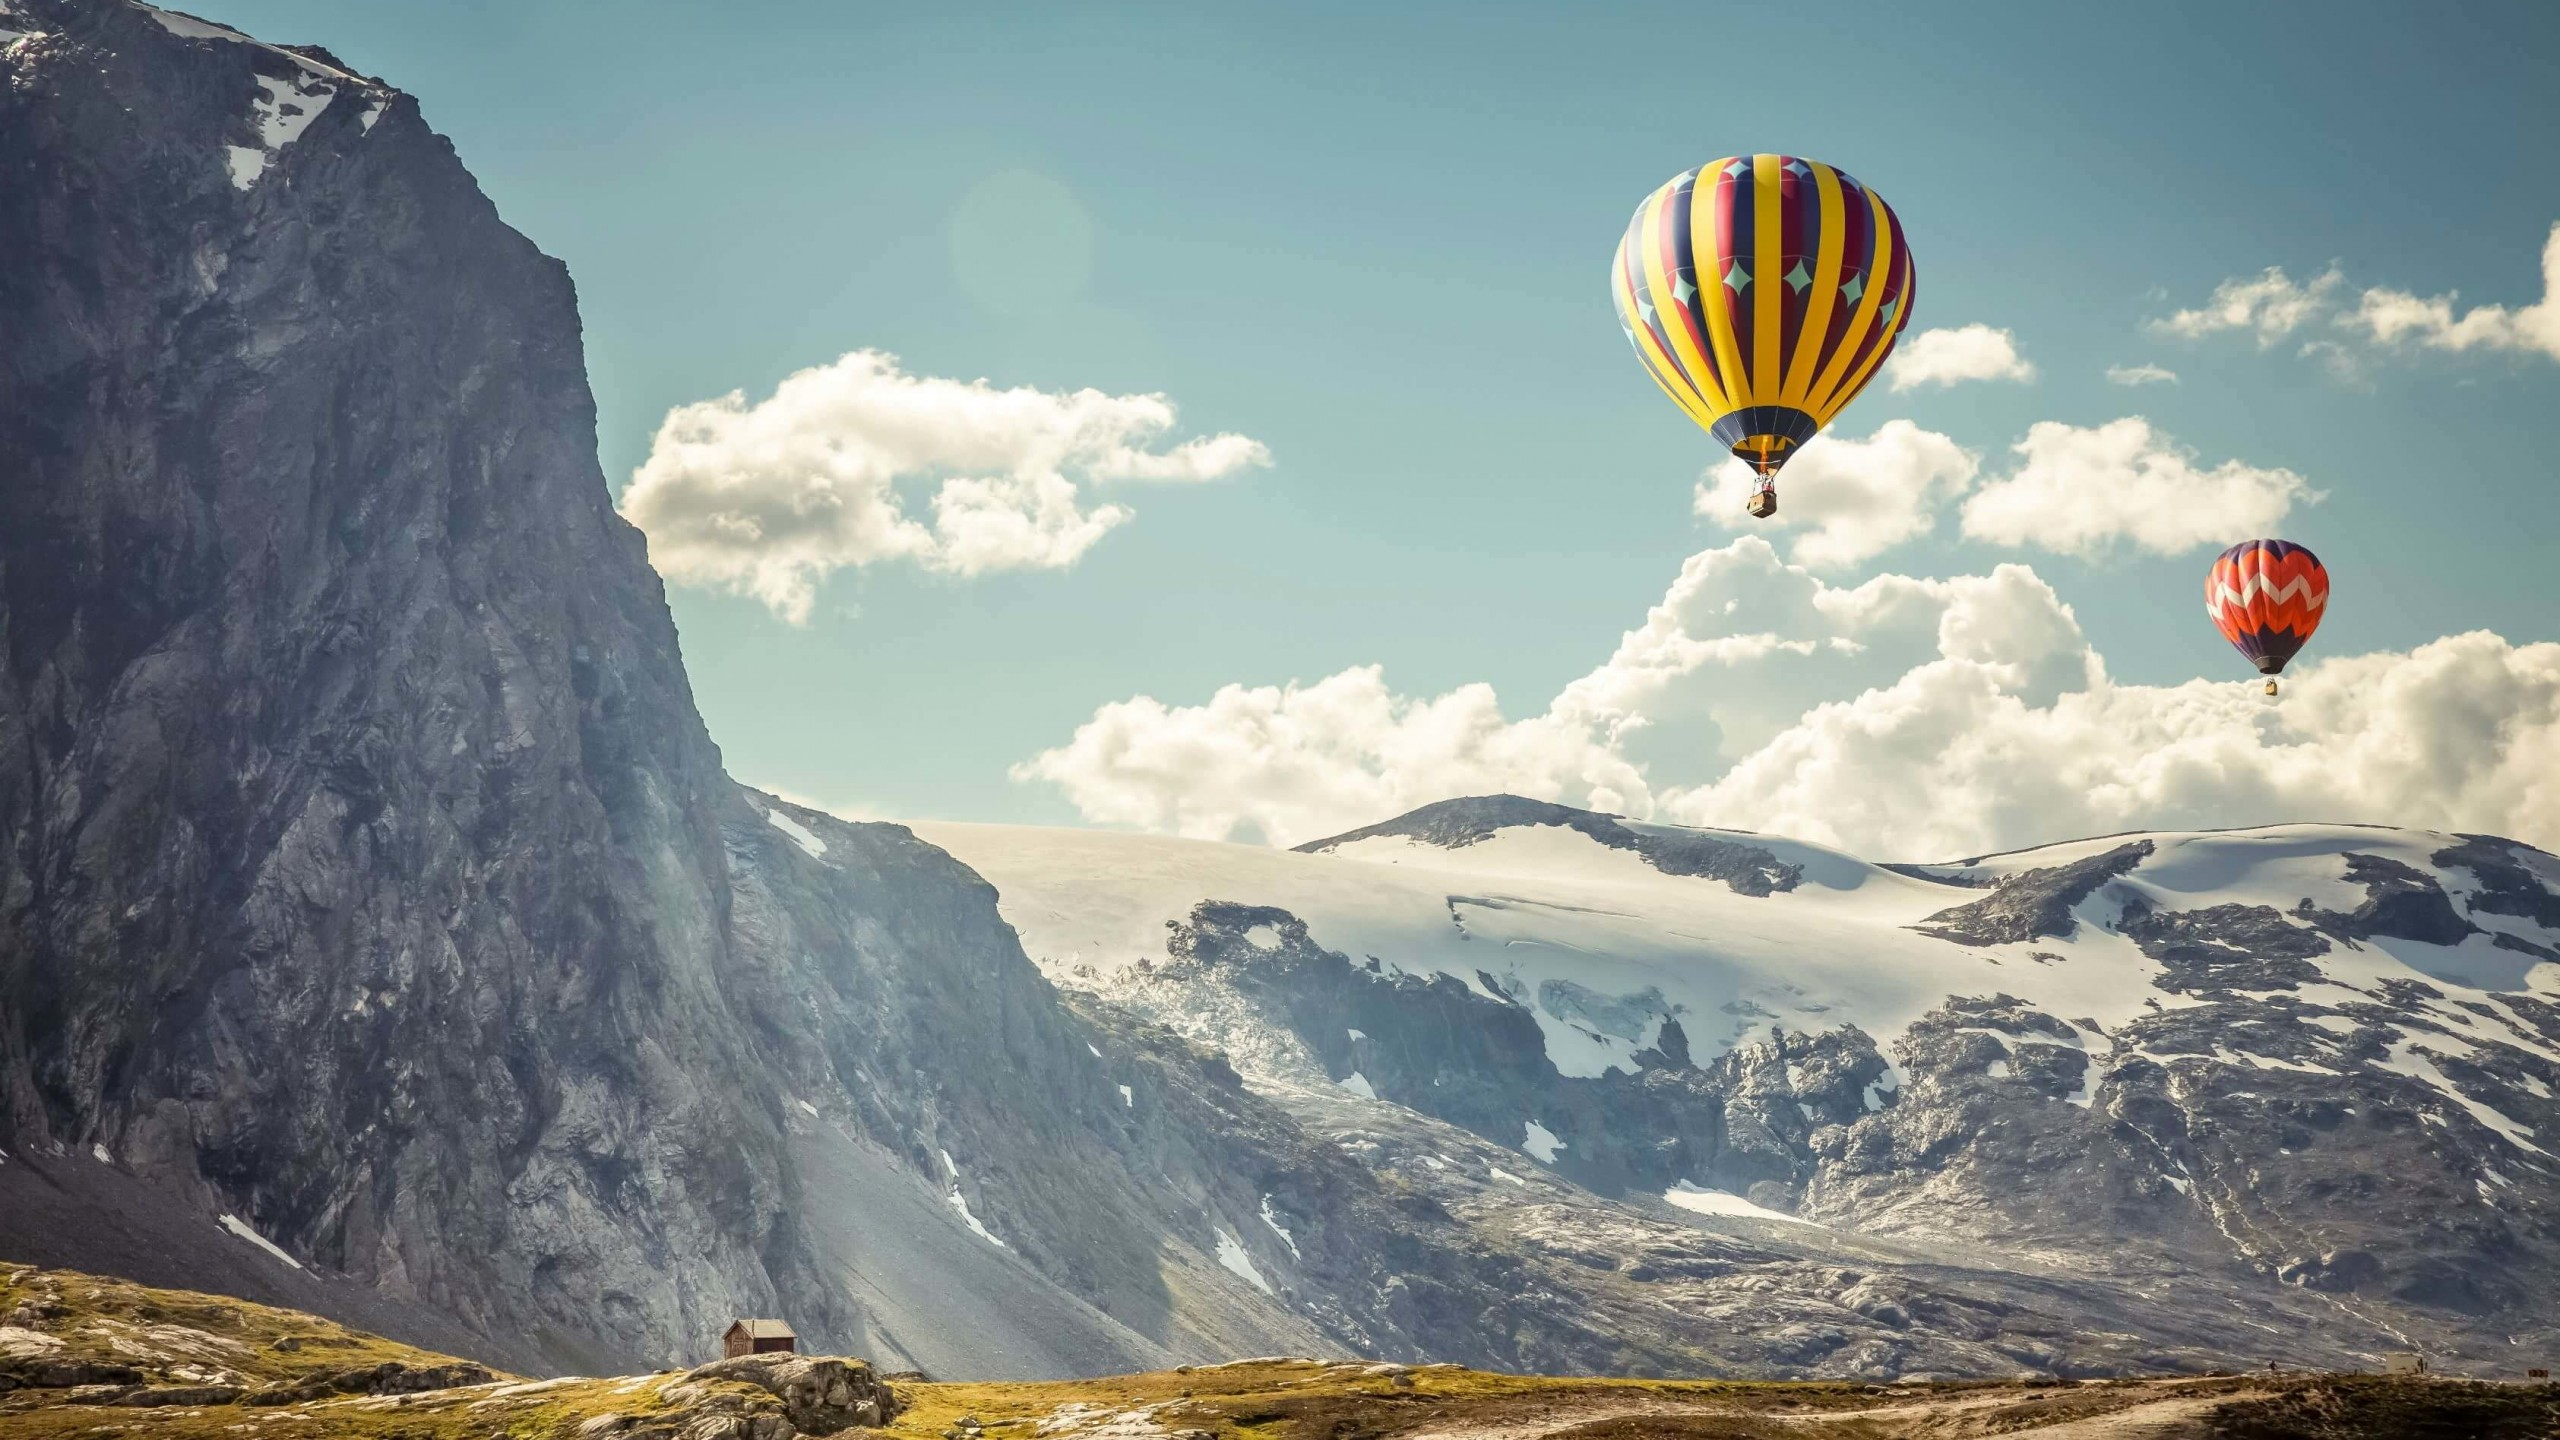 Hot Air Balloon Over the Mountain Wallpaper for Desktop 2560x1440